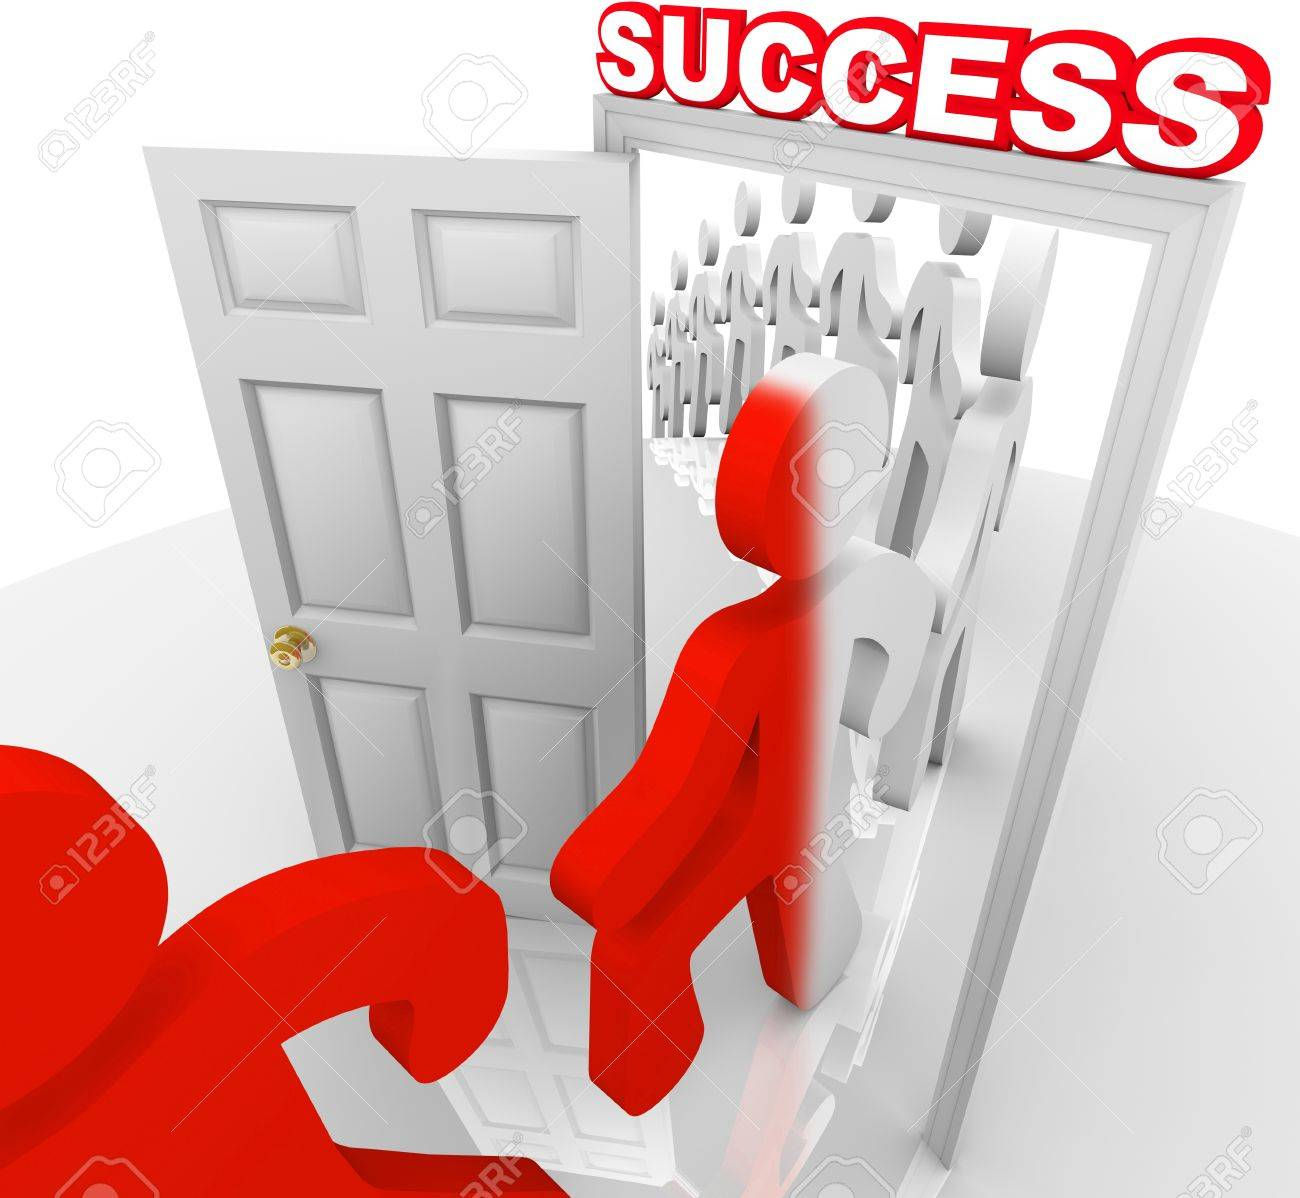 A line of people step through a doorway marked Success and are changed to a new color symbolizing that they have been transformed to achieve and accomplish their goals in life Stock Photo - 11679237